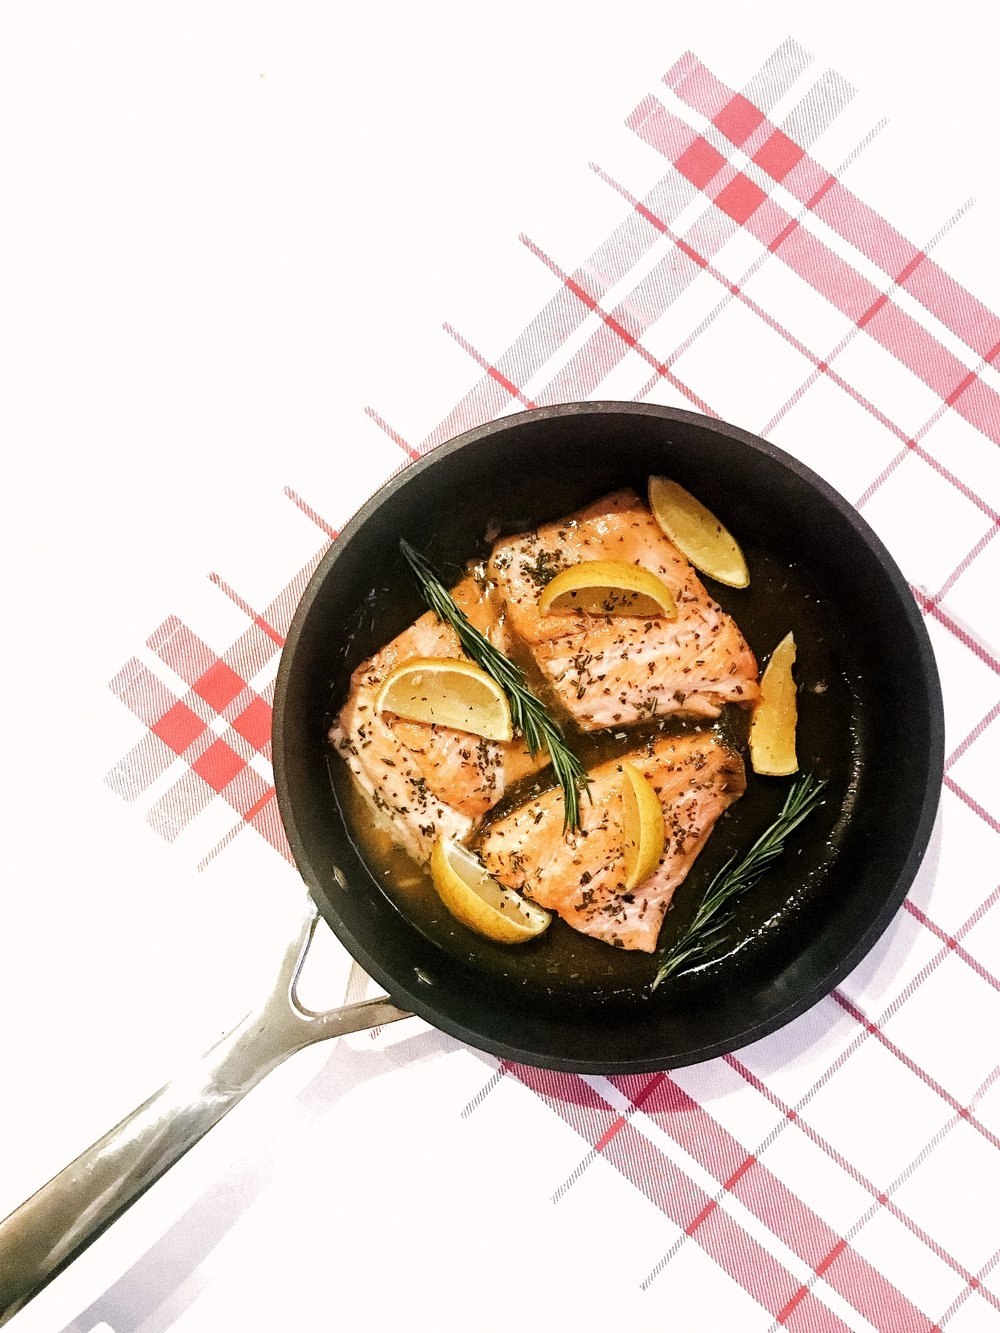 Lemon Rosemary Salmon - Healthy Dinner - AIP, GAPS, Paleo, Gluten-Free, Dairy-Free